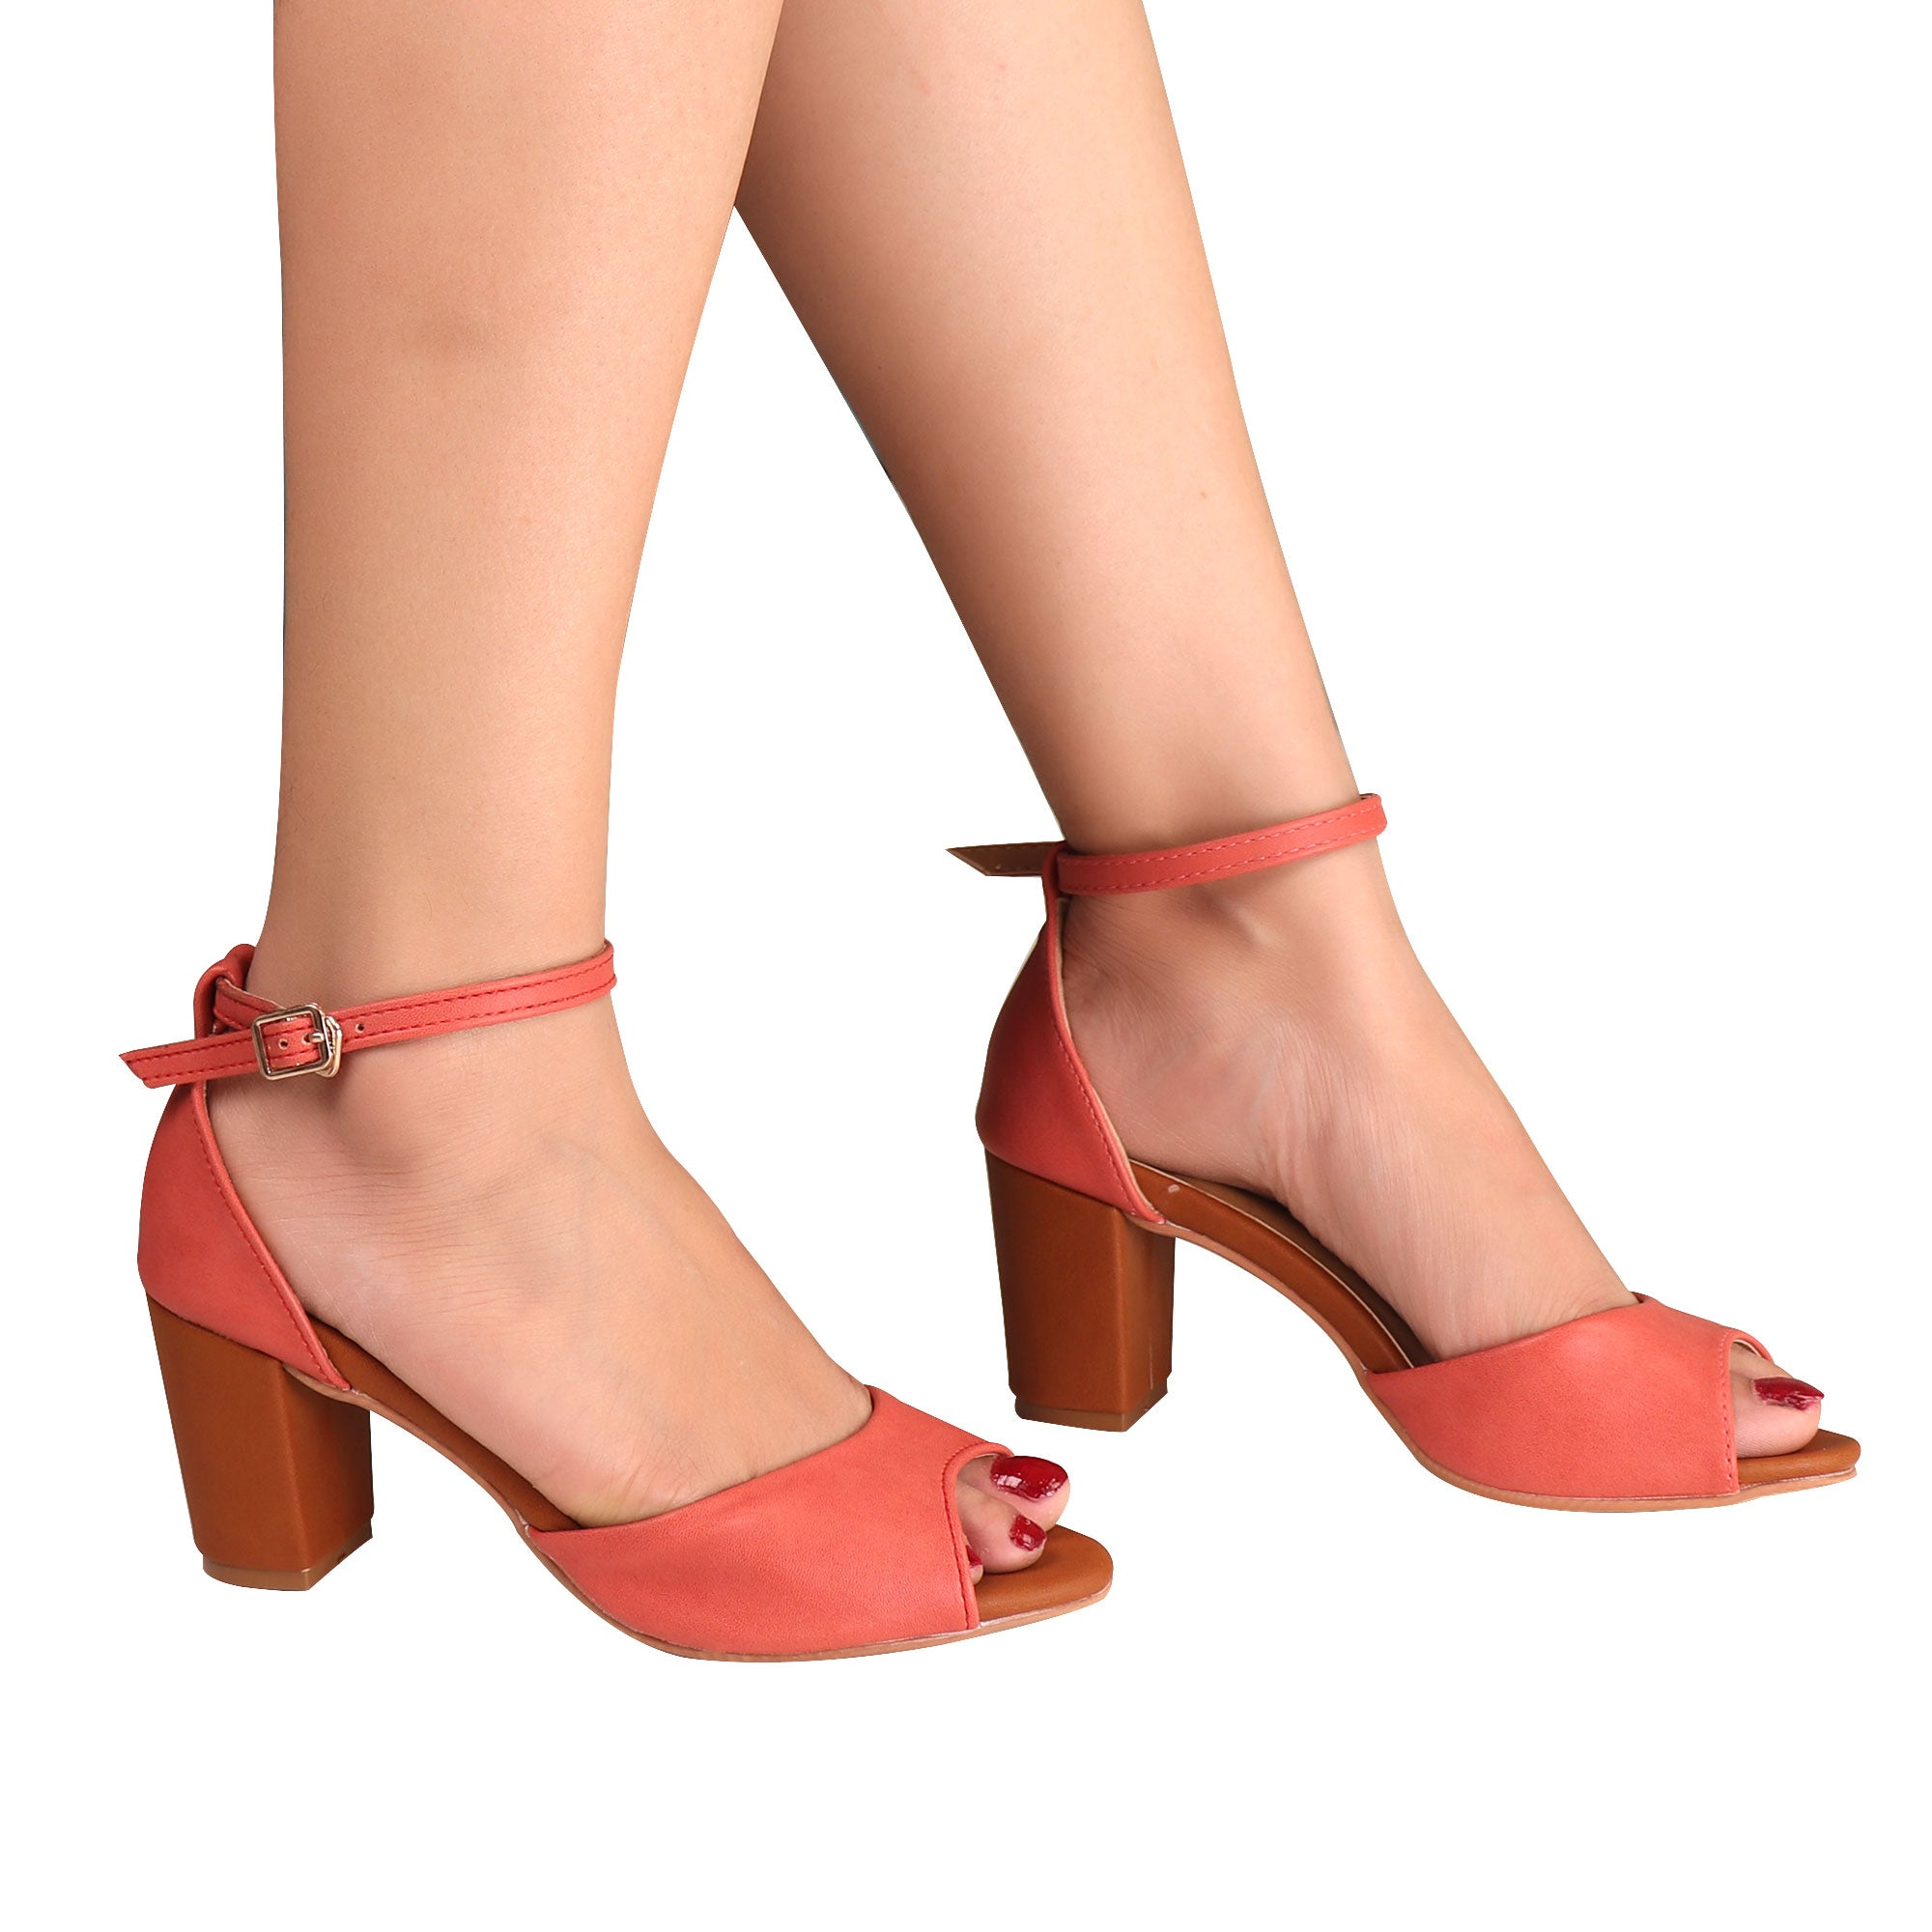 Foot Wear,The fashionista Block Heels In Peach Pink - Cippele Multi Store